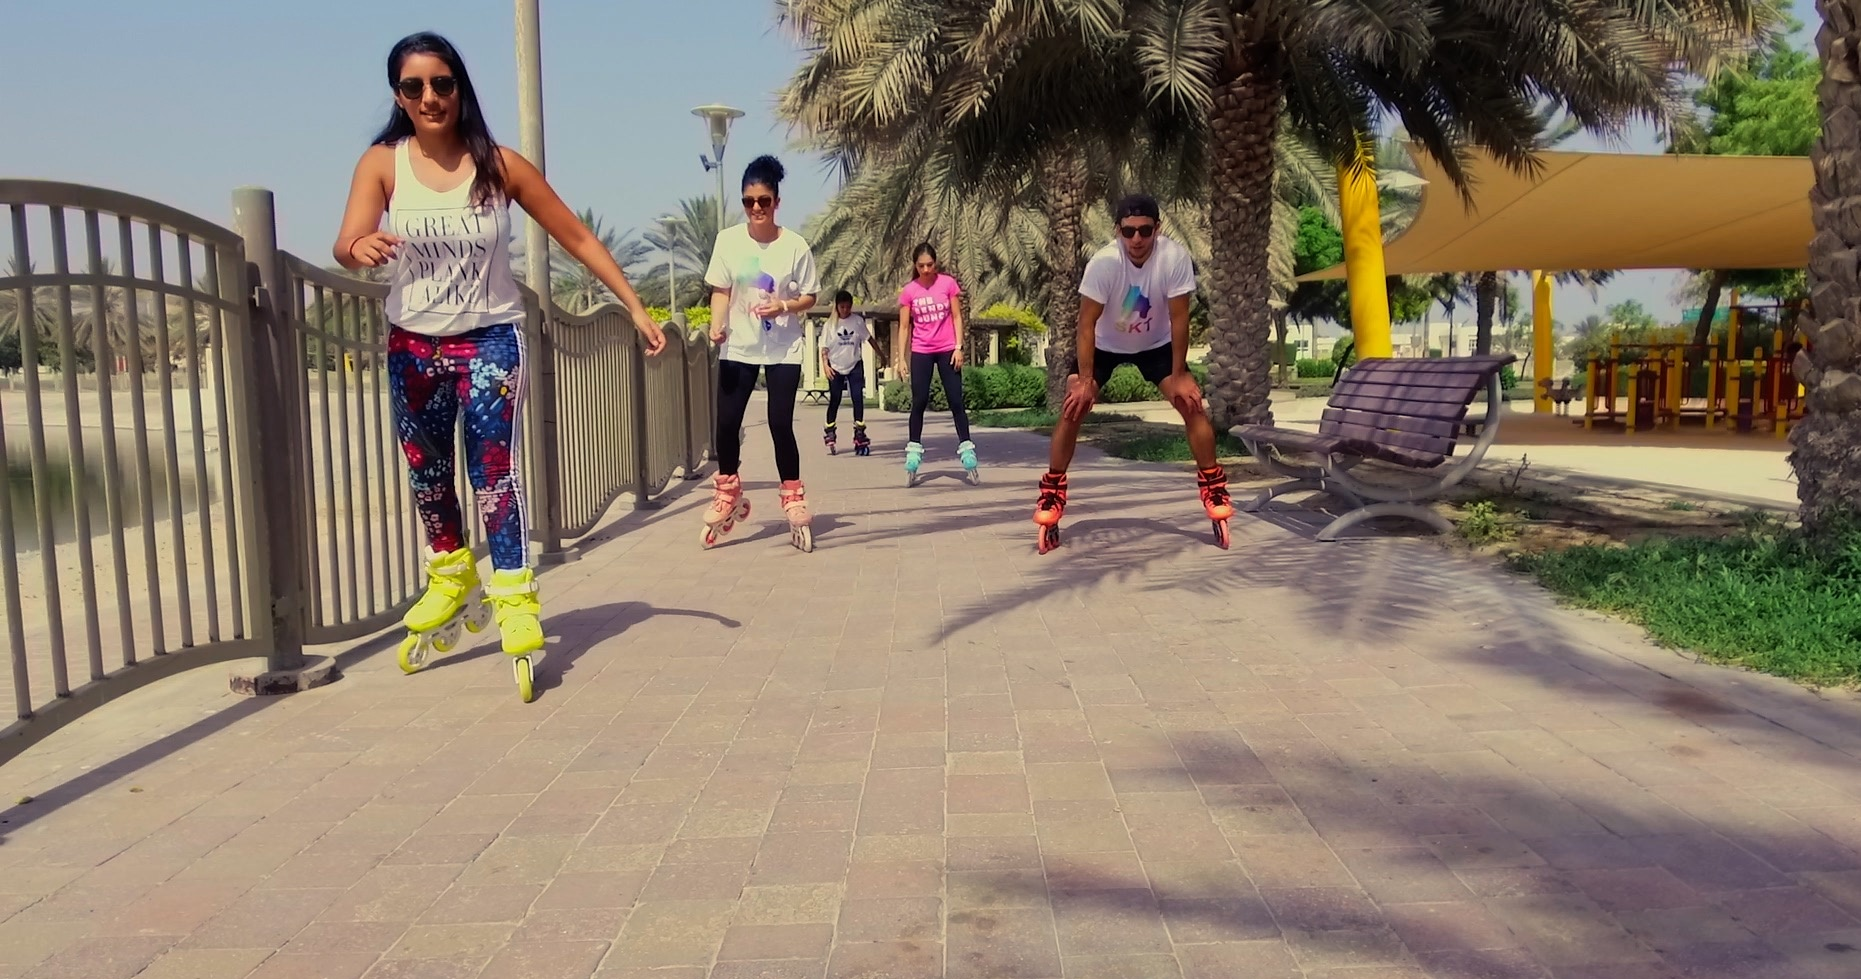 WeAreSkt roller skating in Dubai - fun fitness in dubai